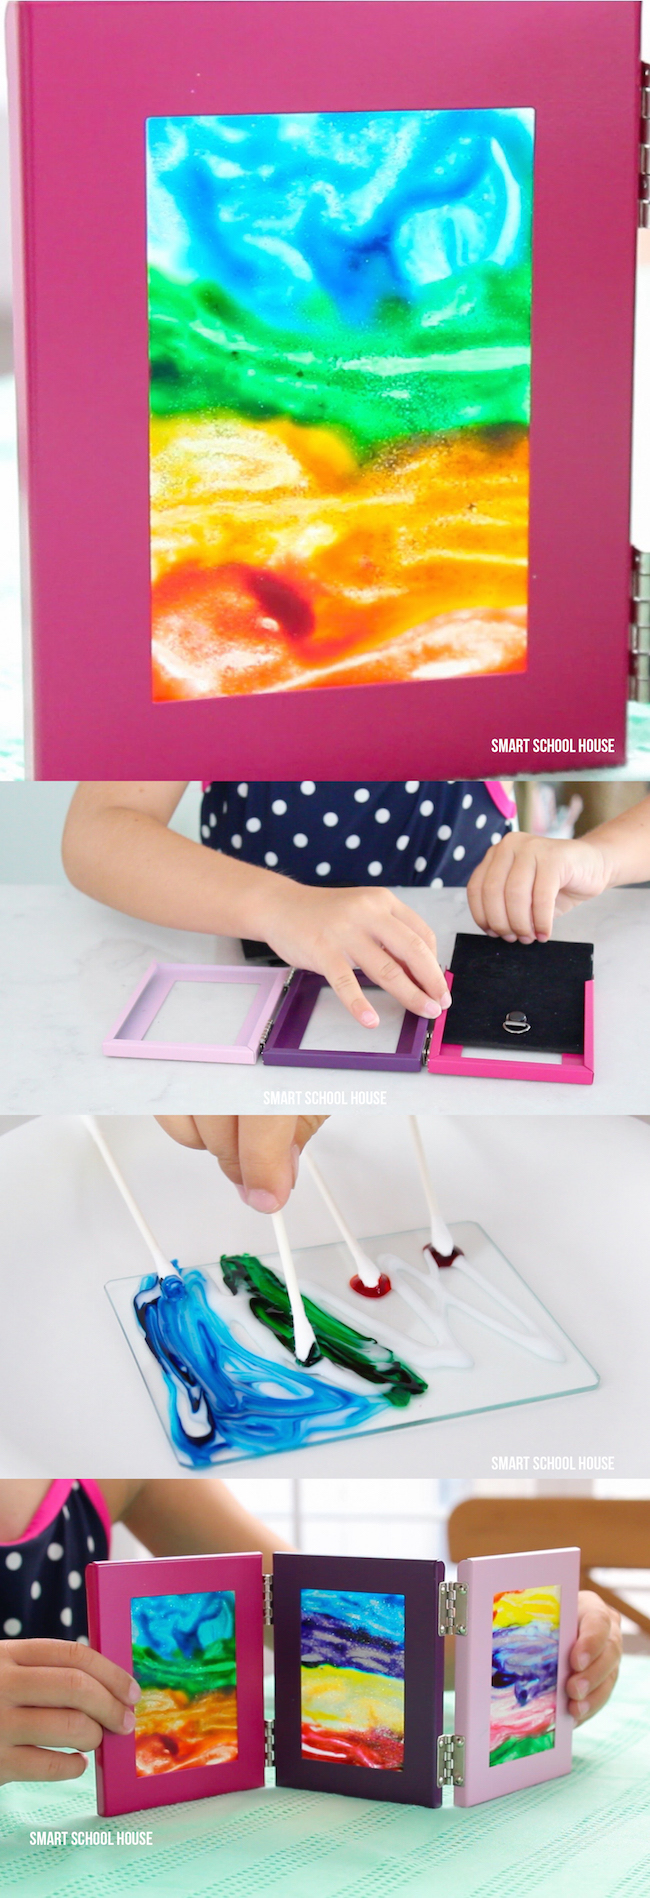 Glue and food coloring art activity for kids.